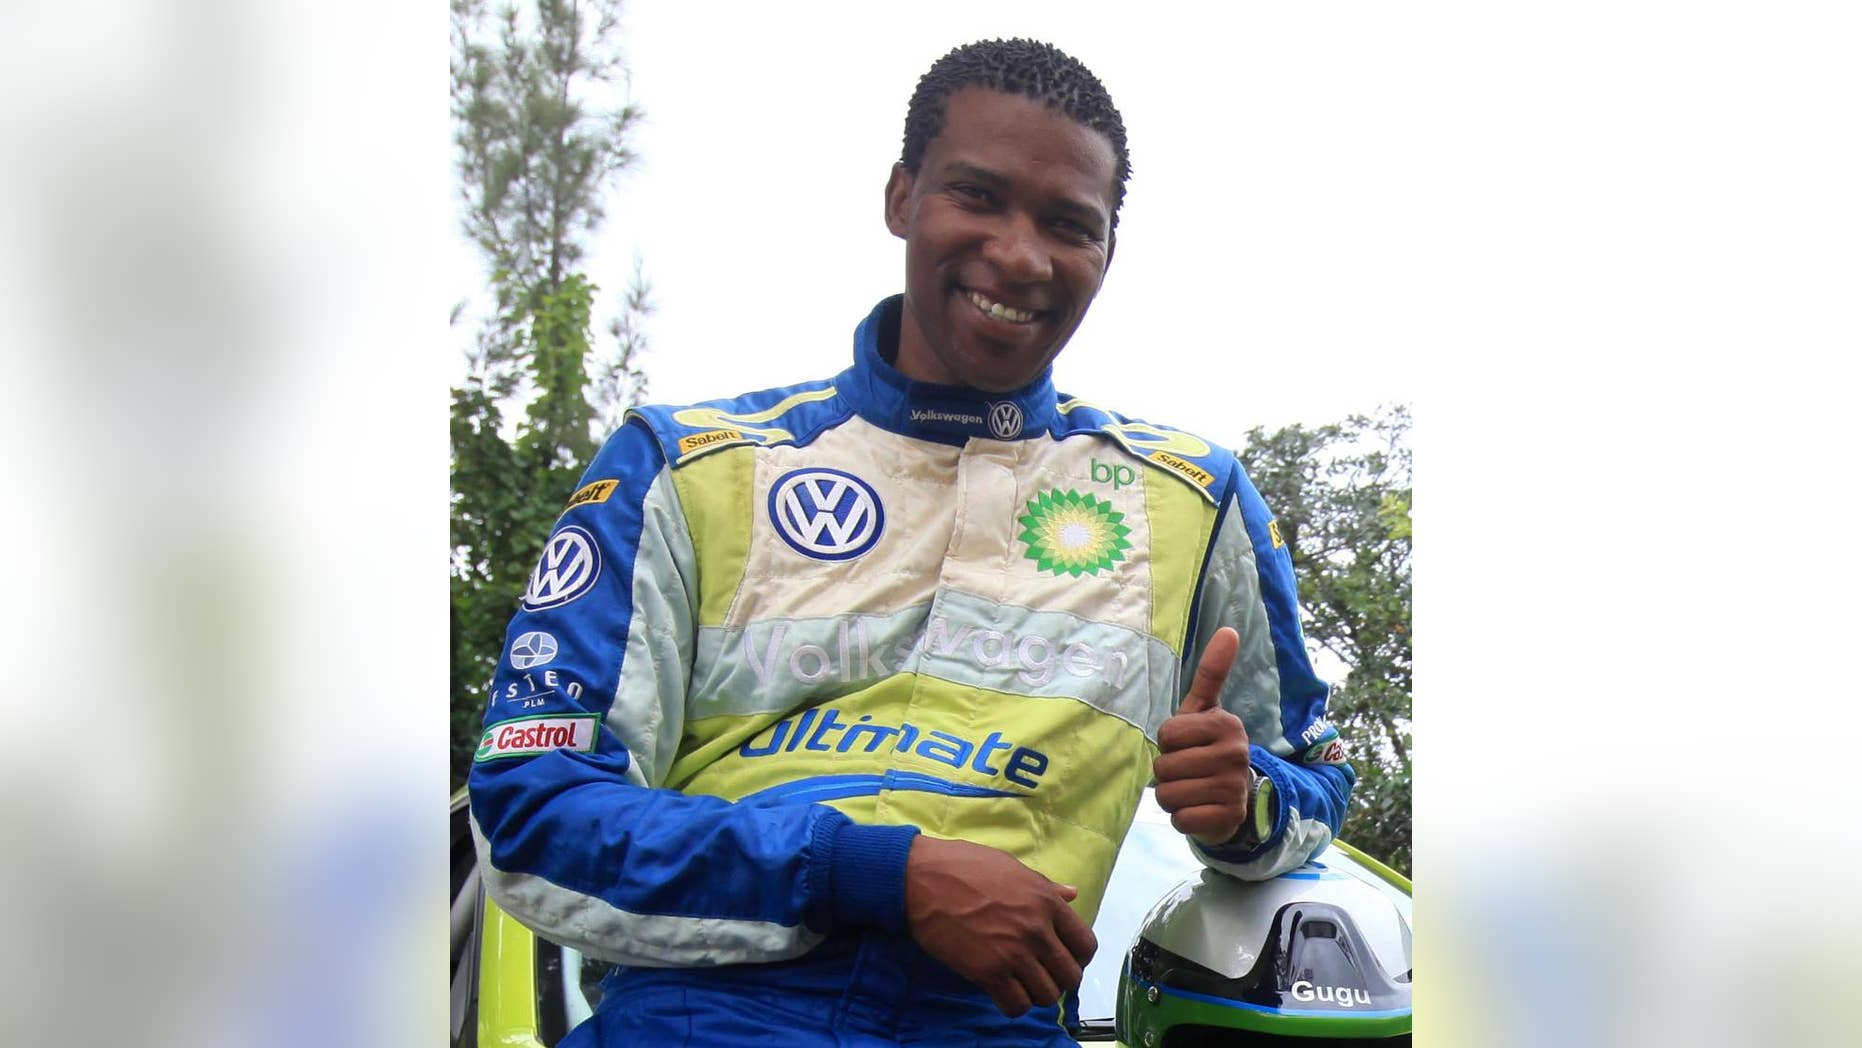 """In this photo taken in 2011, South Africa rally driver Gugu Zulu gestures next to his car. A South African trying to summit Kenya's Mount Kilimanjaro to mark Mandela Day has died. A statement from the Nelson Mandela Foundation said details are """"sketchy"""" but that it appeared Gugu Zulu had problems breathing early Monday July 18, 2016, as his group tried to reach Africa's highest peak. (AP Photo)"""